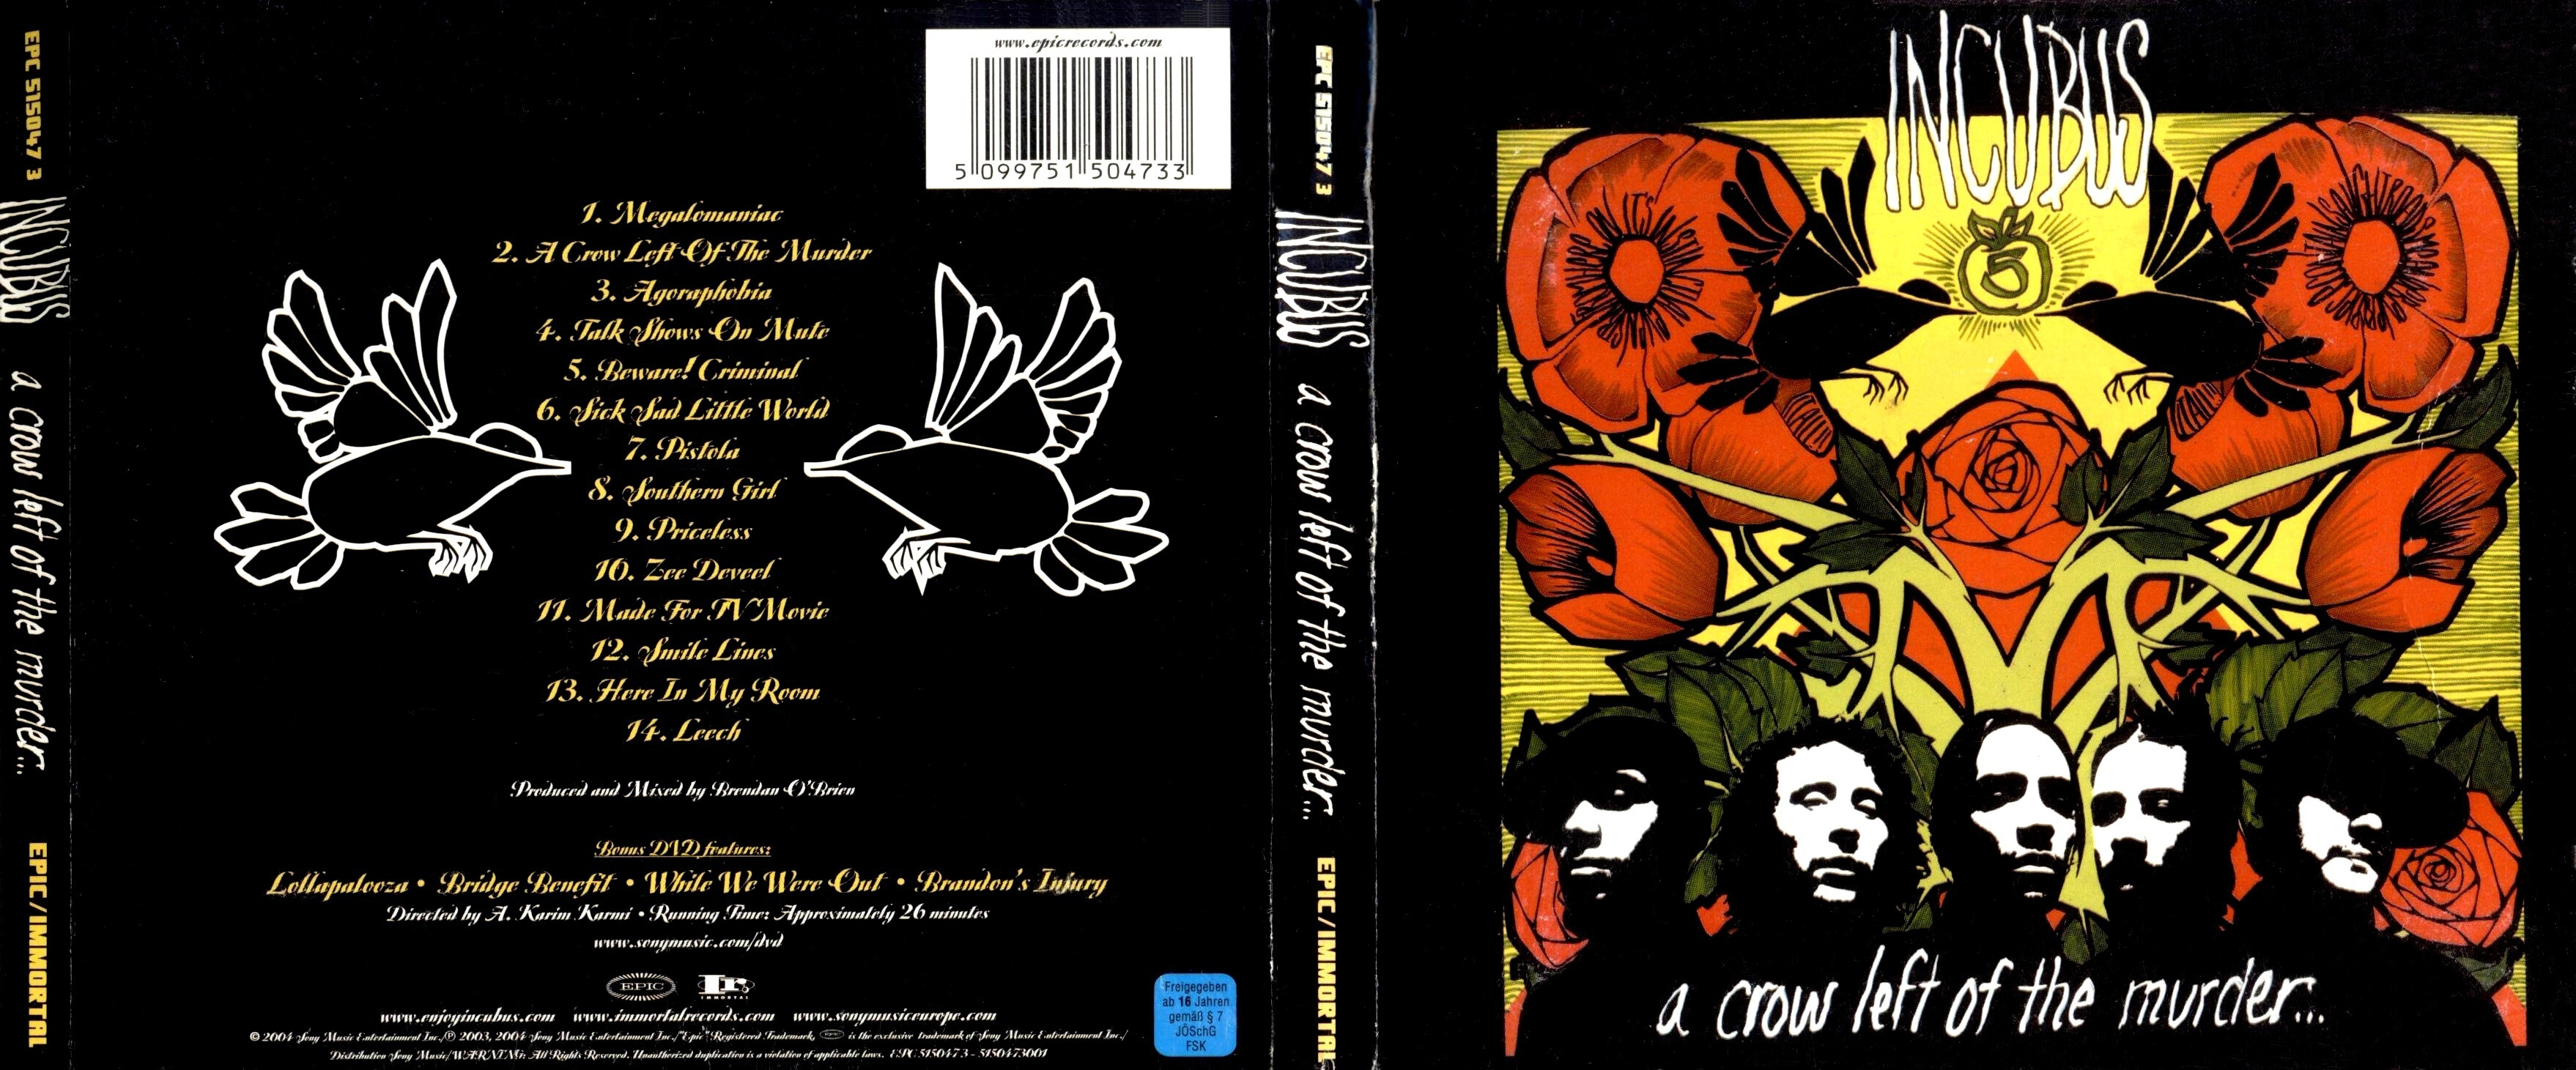 Copertina cd Incubus - A Crow Left Of The Murder ... A Crow Left Of The Murder